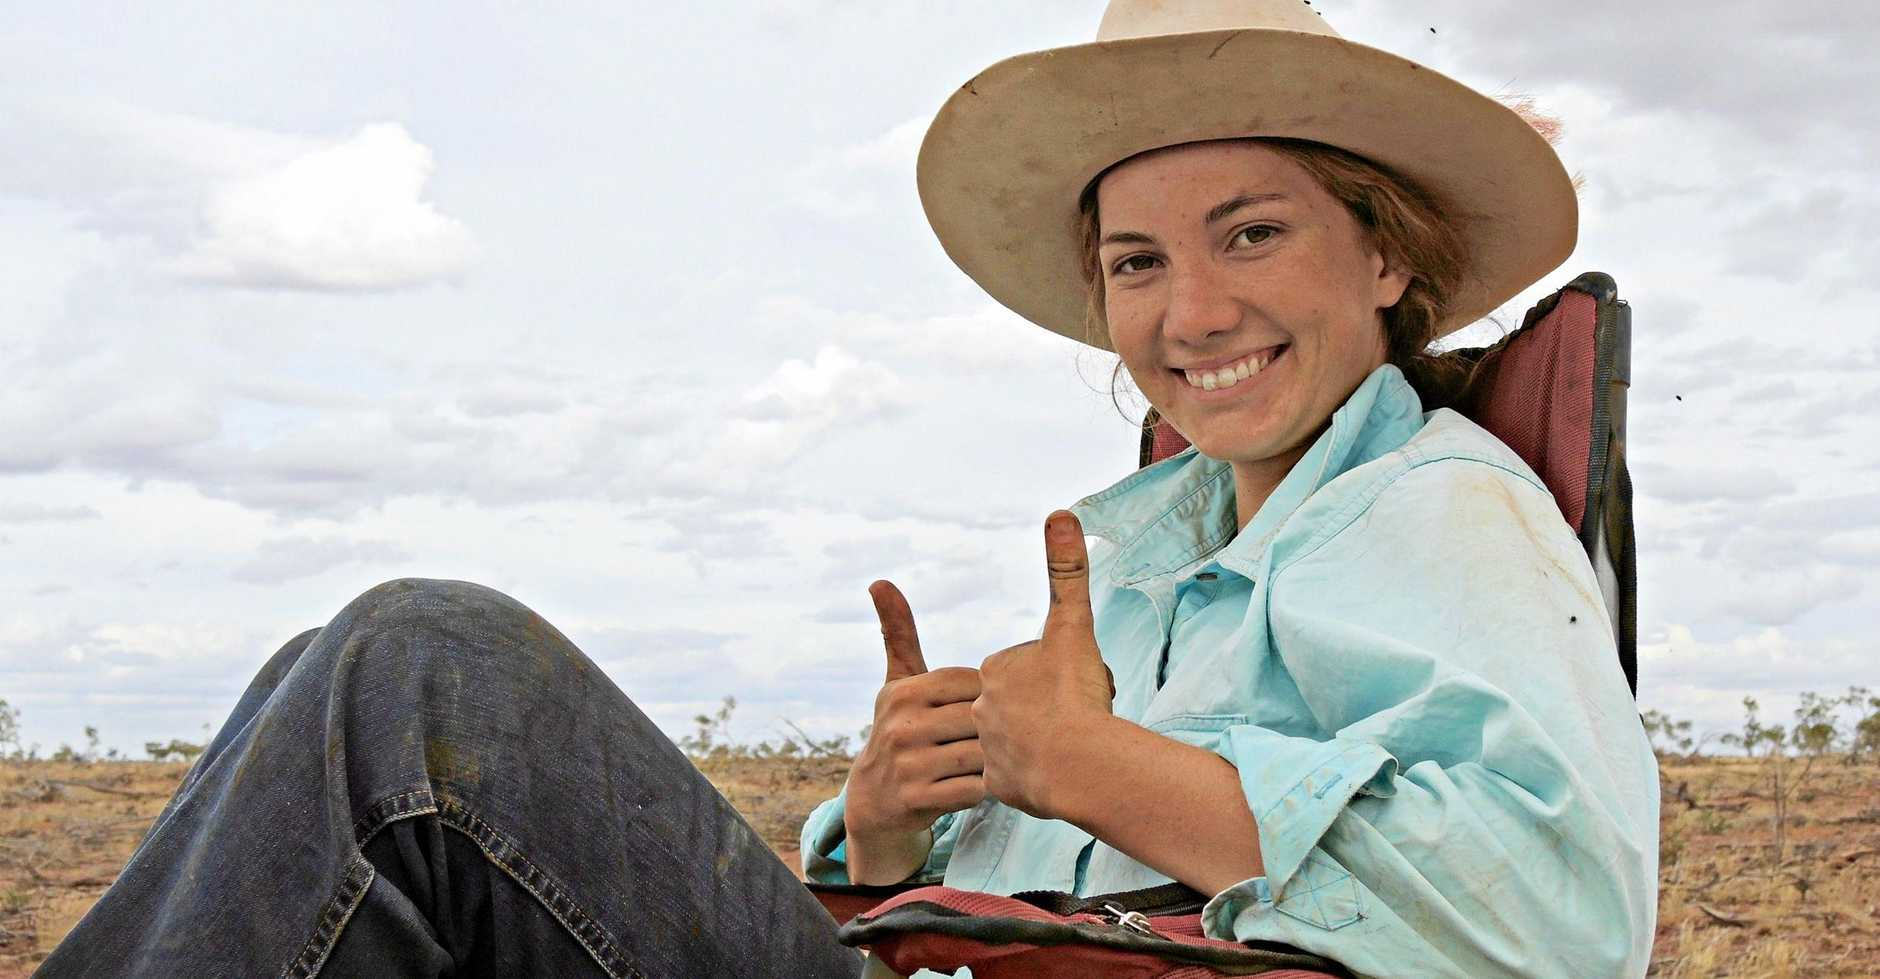 COUNTRY: Zara spent her gap year working on her family's property, Barbara Plains.